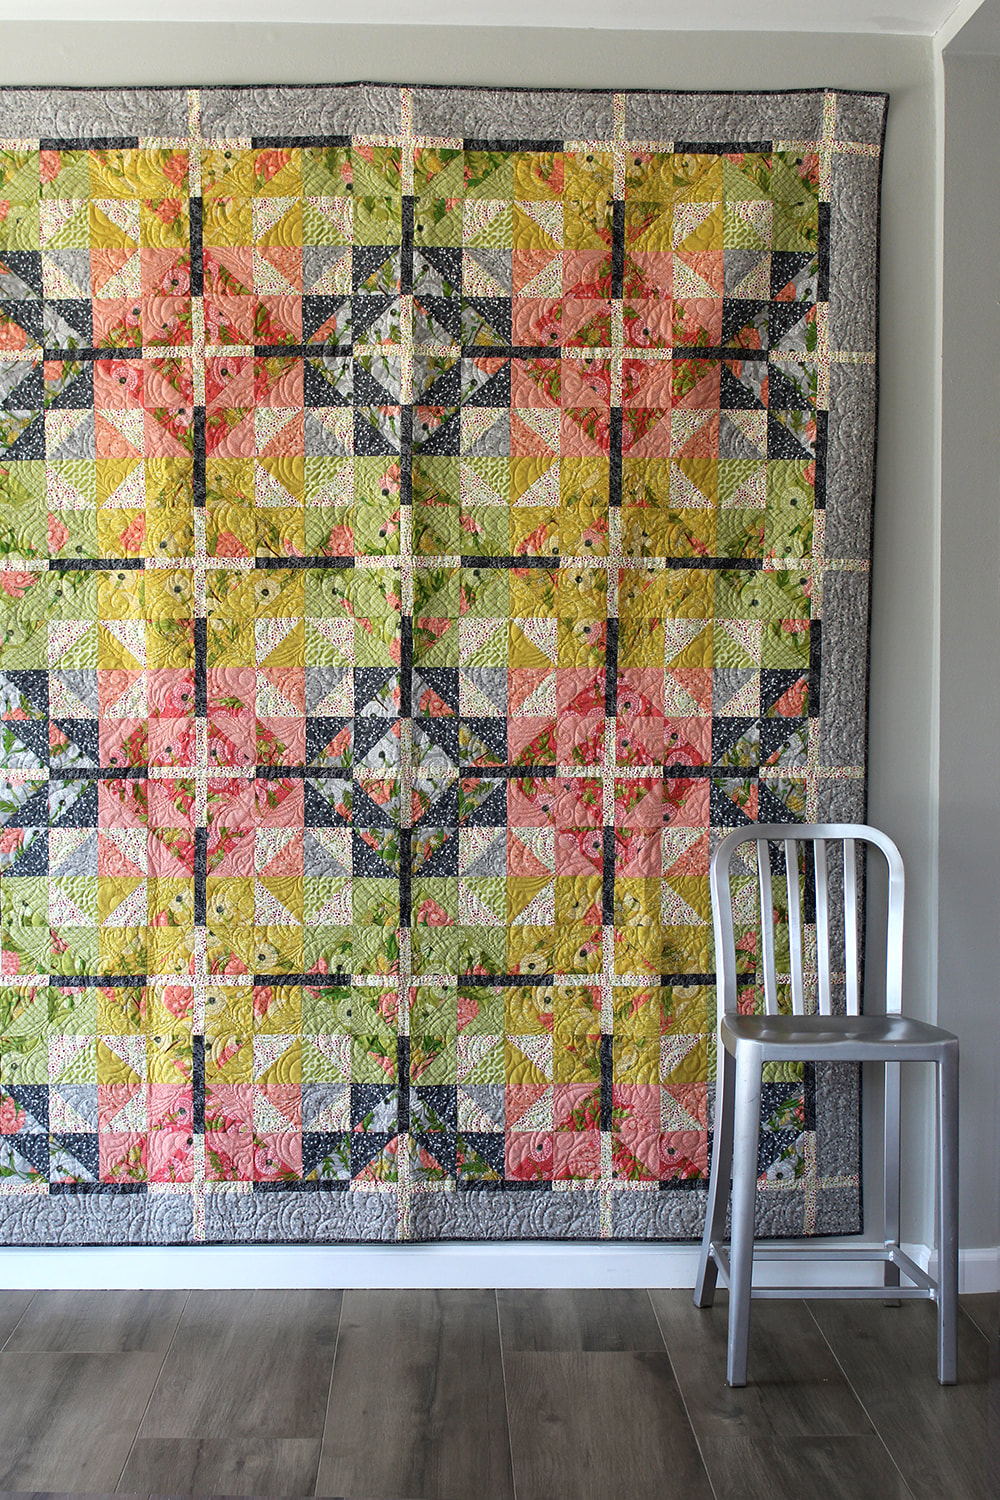 Farmhouse Crossing quilt by Robin Pickens using Dandi Annie